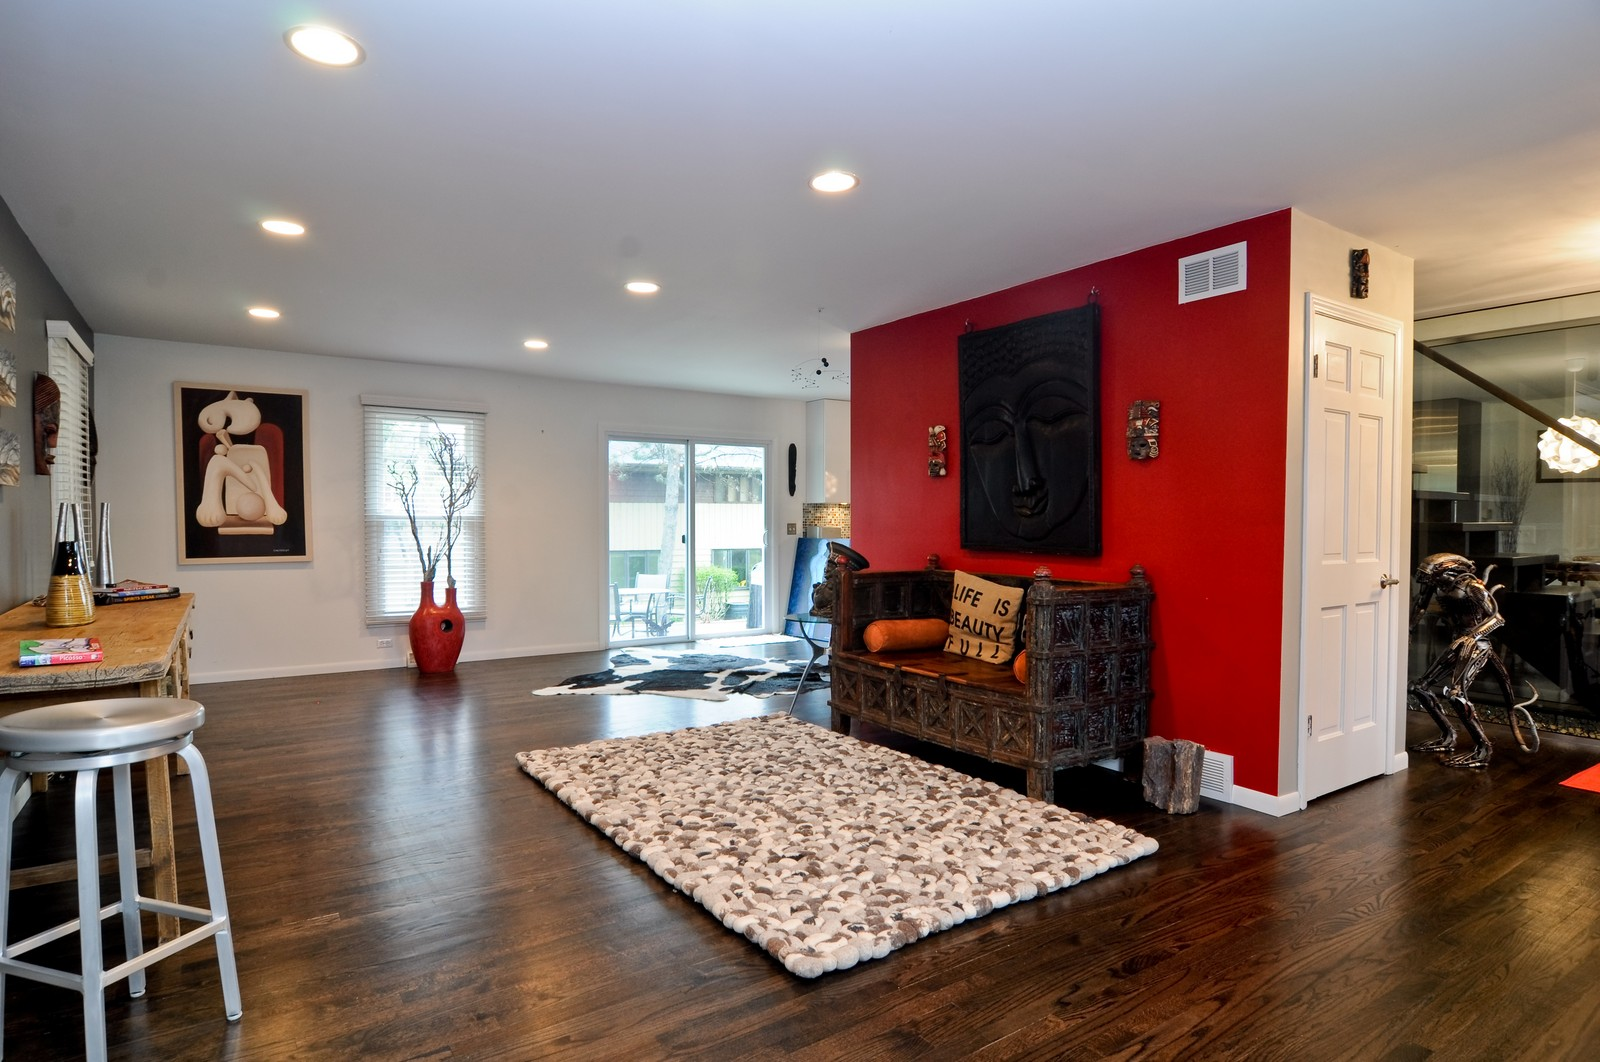 Real Estate Photography - 618 Hill St, Barrington, IL, 60010 - Location 2